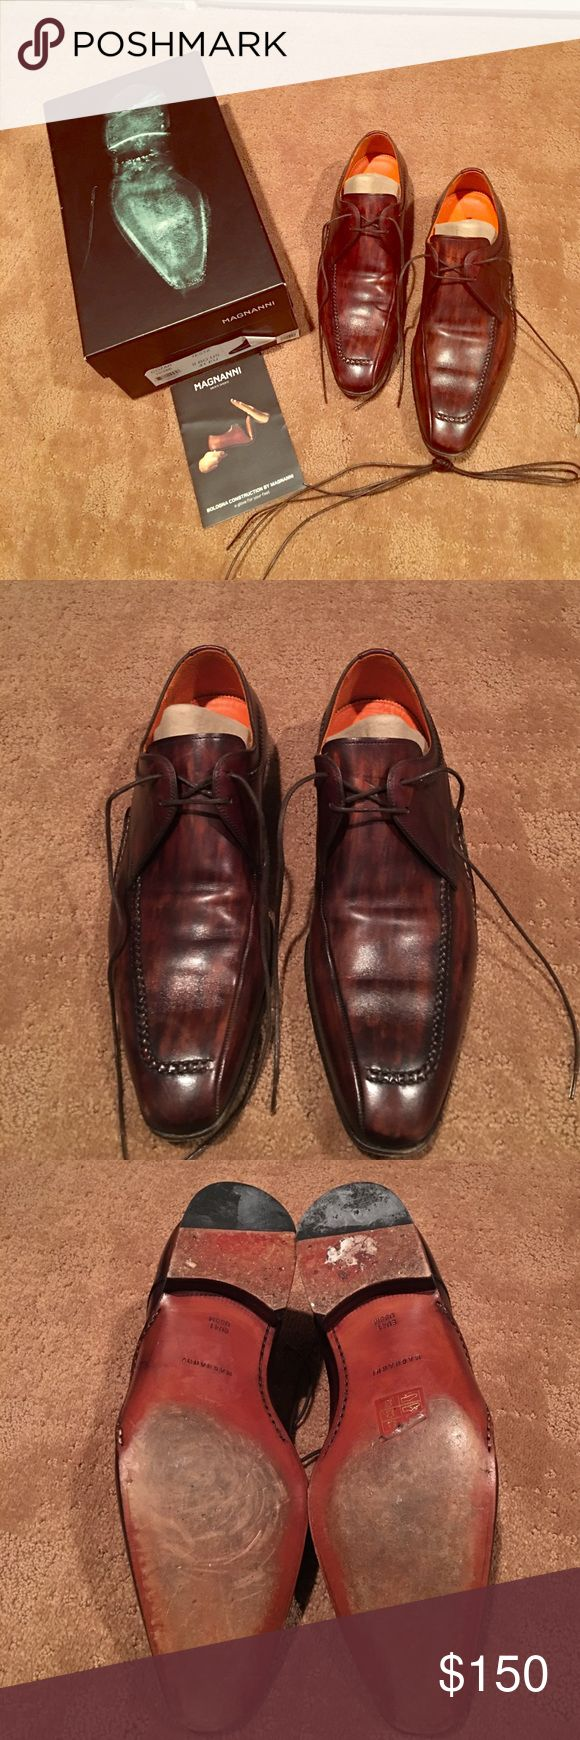 Men's Magnanni shoes size 8 Men's Magnanni shoes size 8 used but in grea...